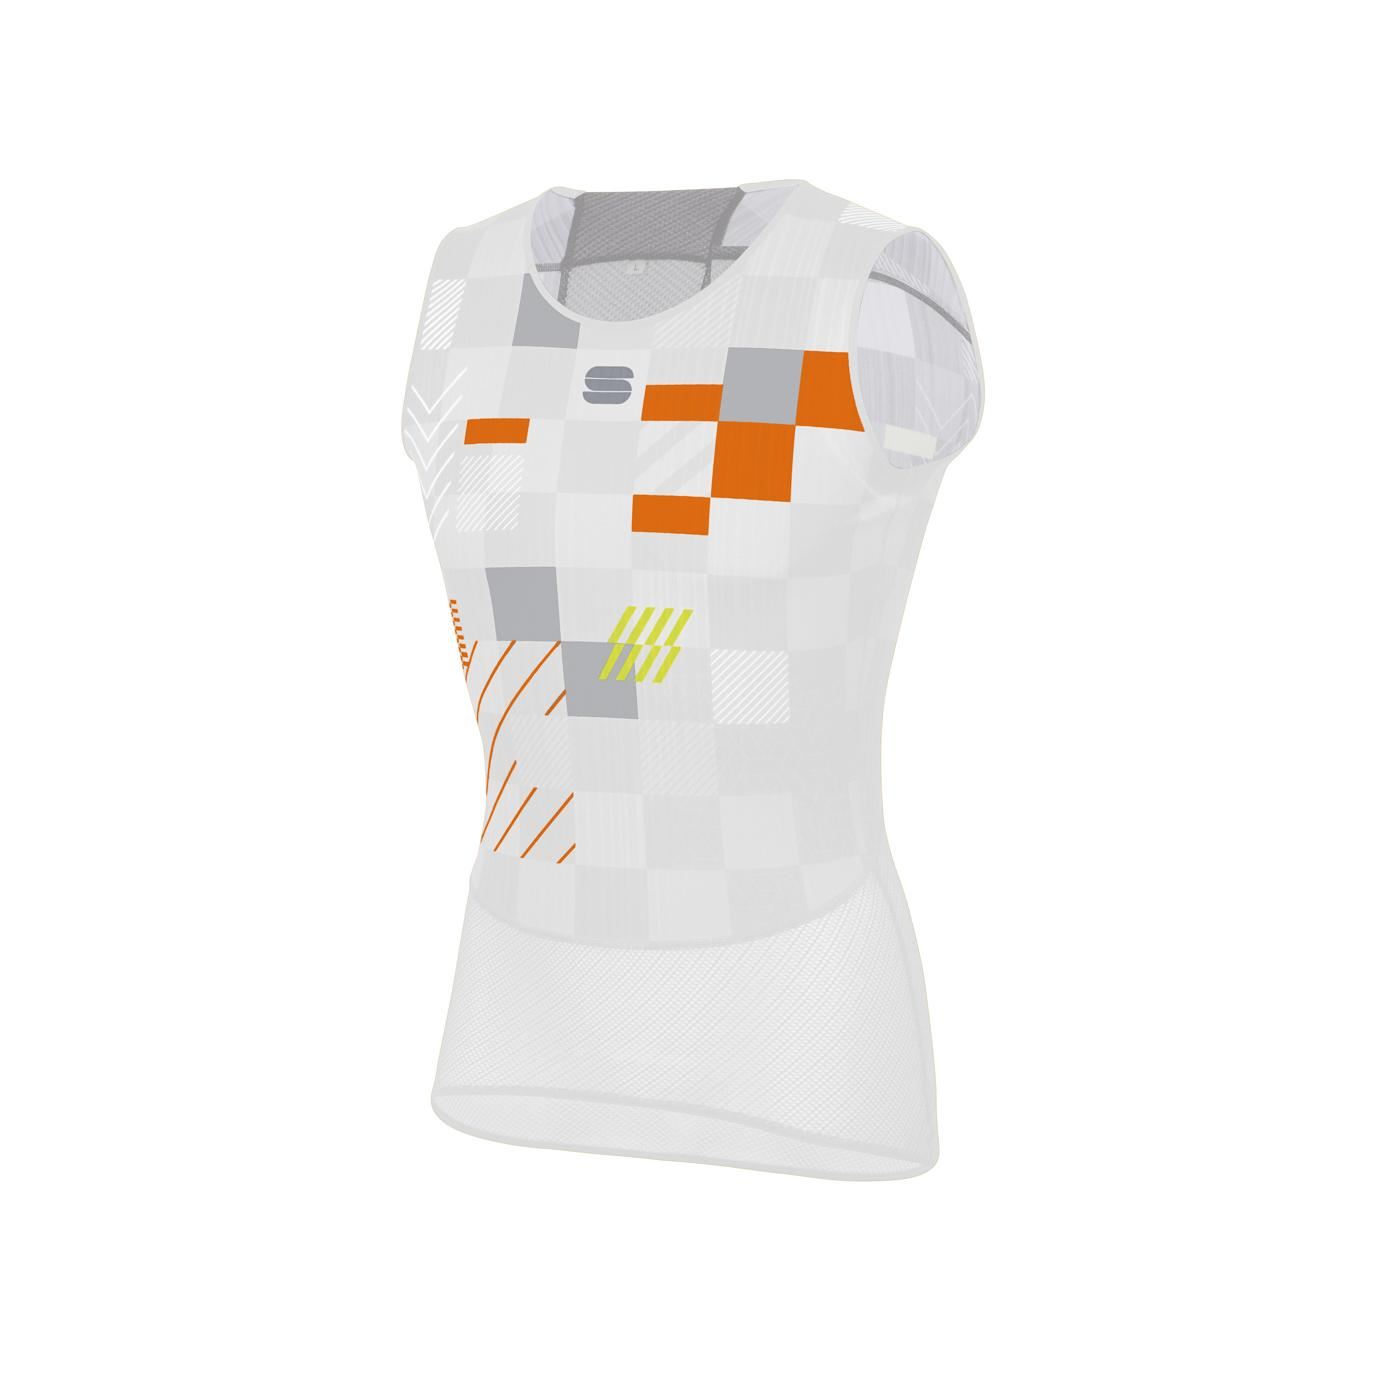 Sportful Ondershirt Mouwloos voor Heren Wit Zilver - SF Pro Baselayer Sleeveless.-White Silver Orange